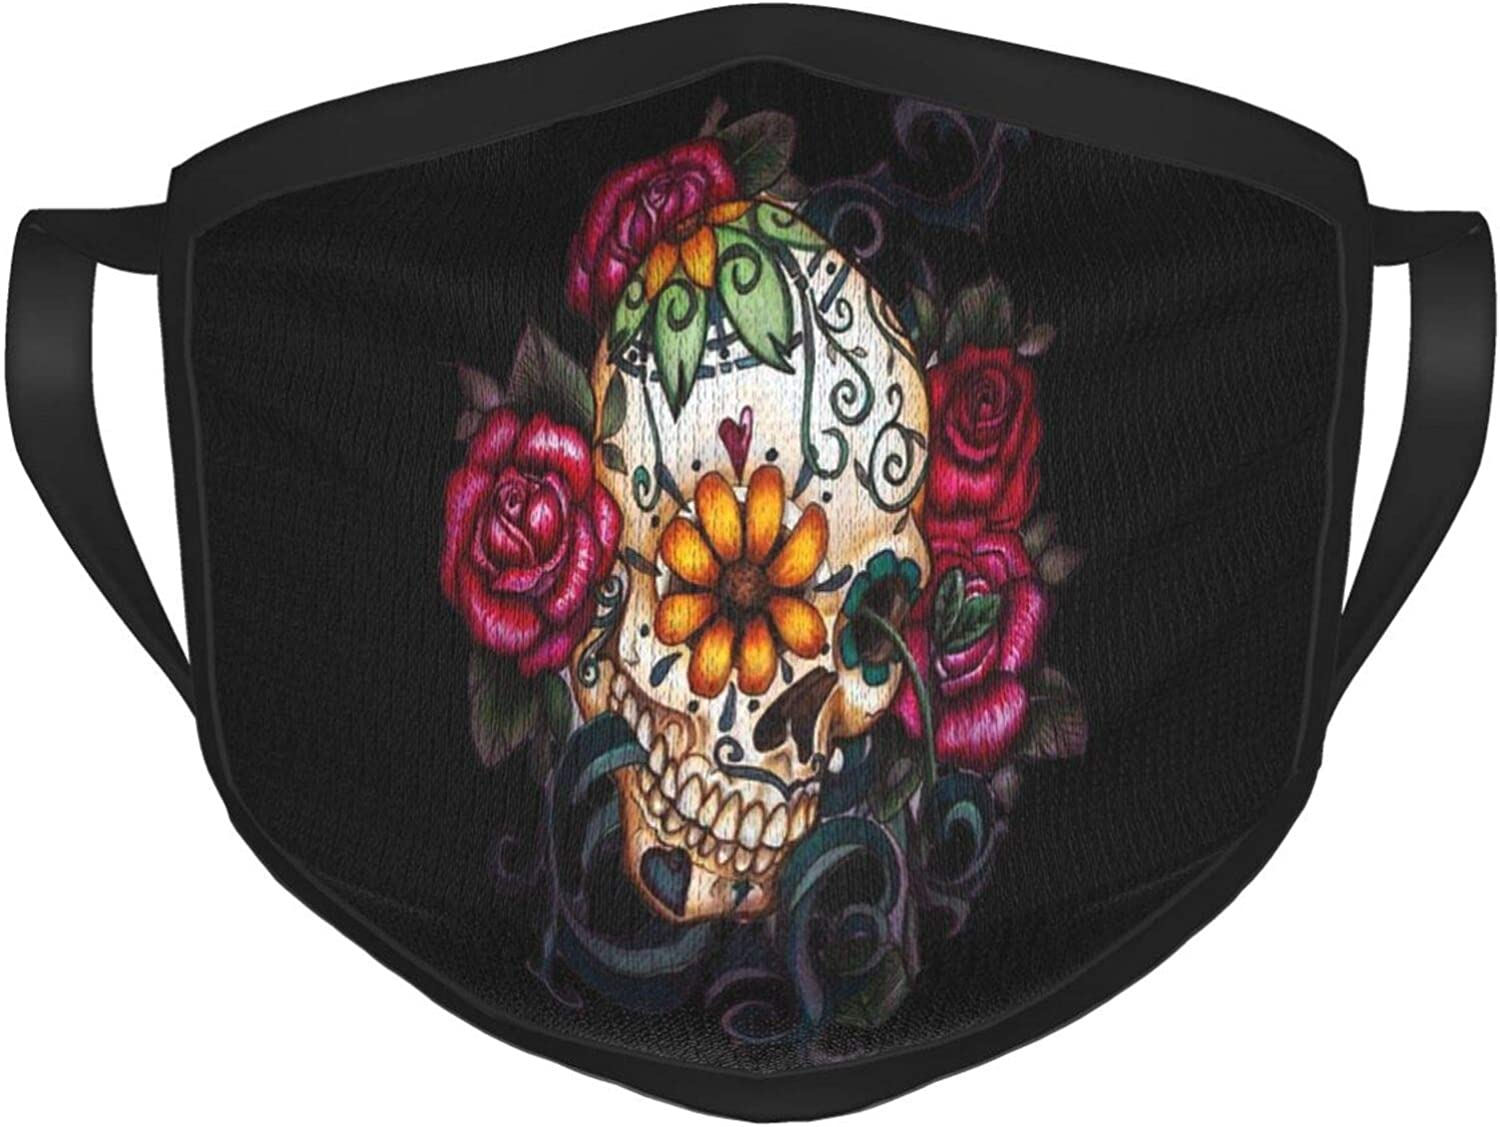 Aboutbaby Sugar Skull Floral Style Cloth Mask Dustproof Protective Bandanas for Kids Teens Men Women